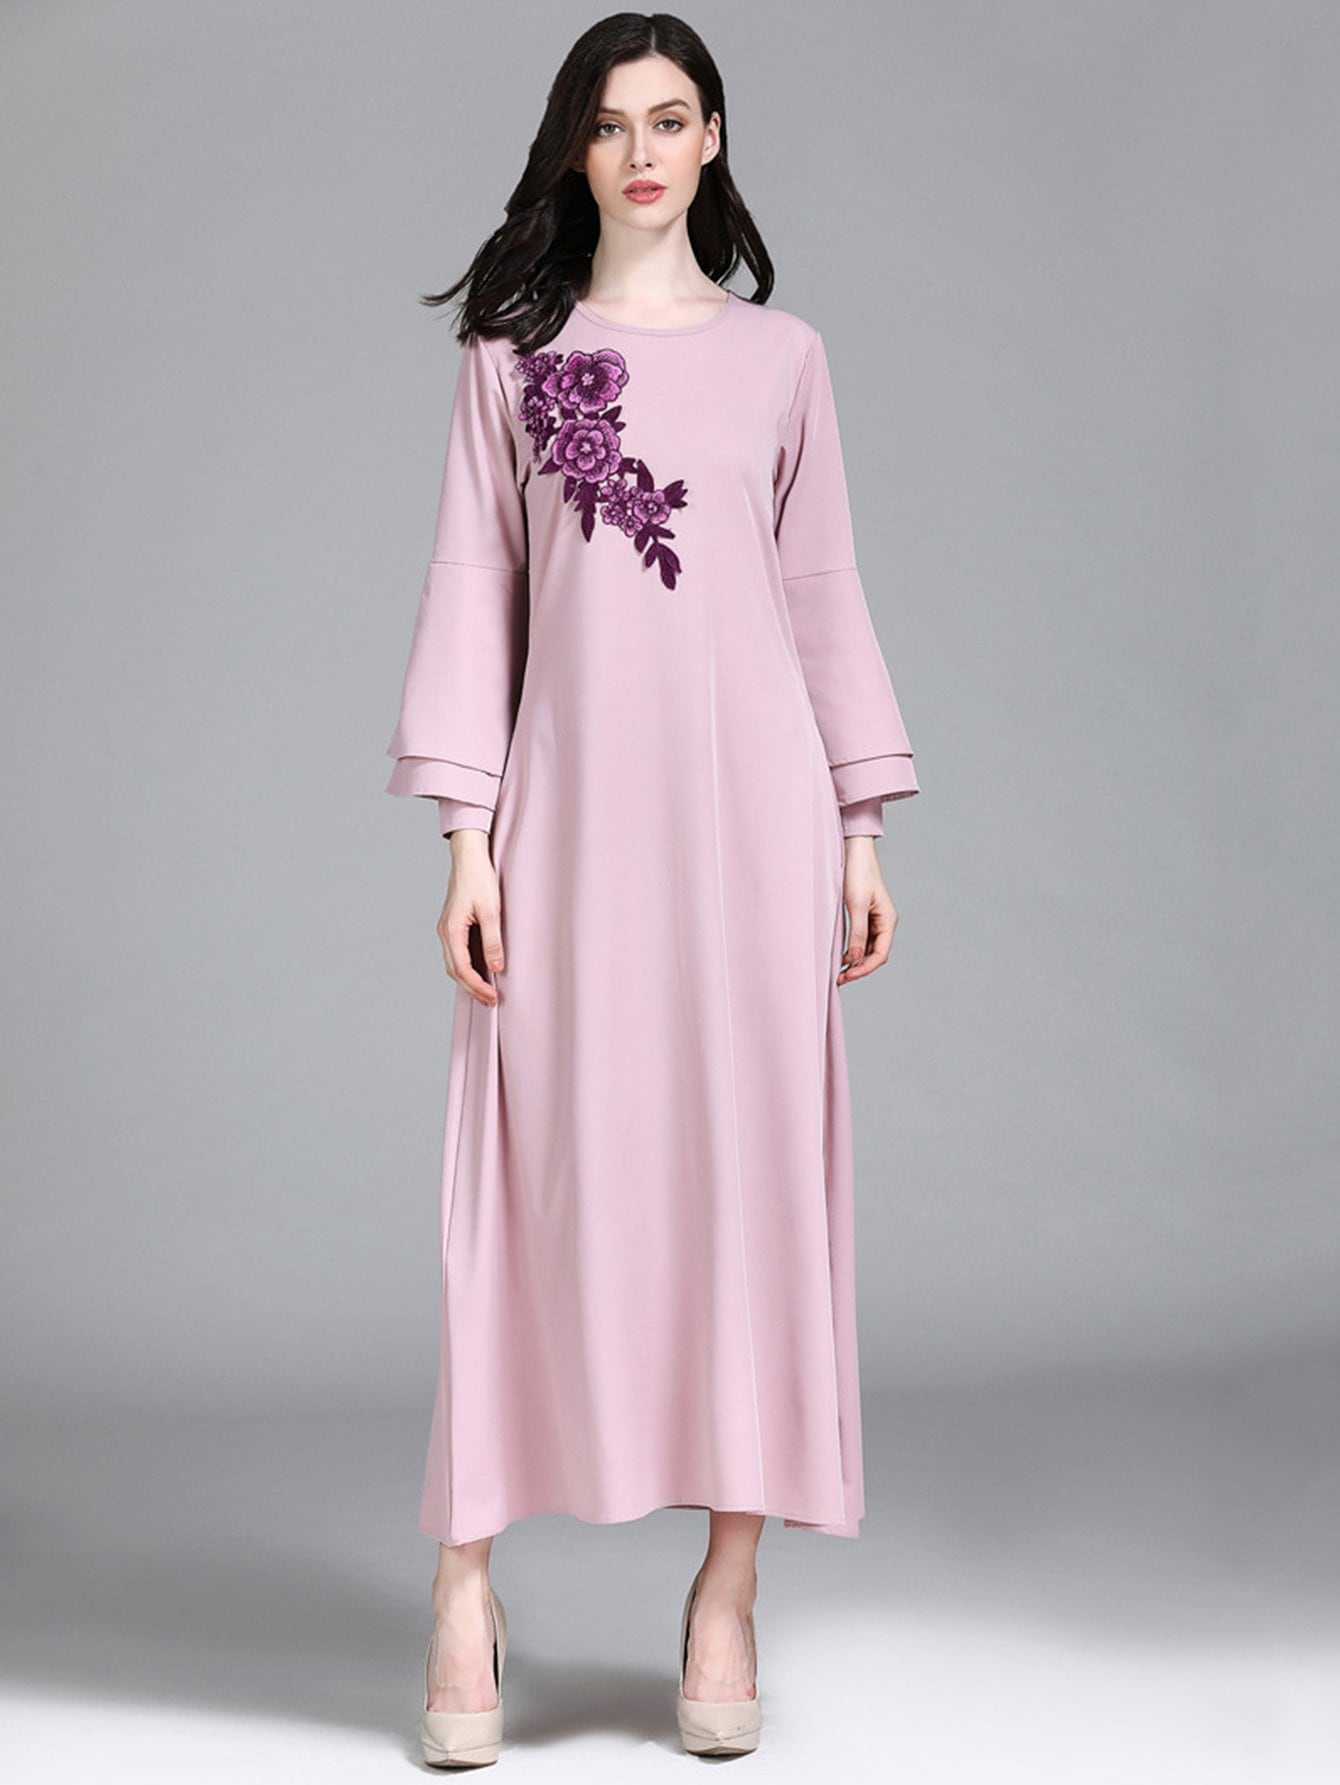 Floral Embroidered Layered Sleeve Dress layered sleeve floral top